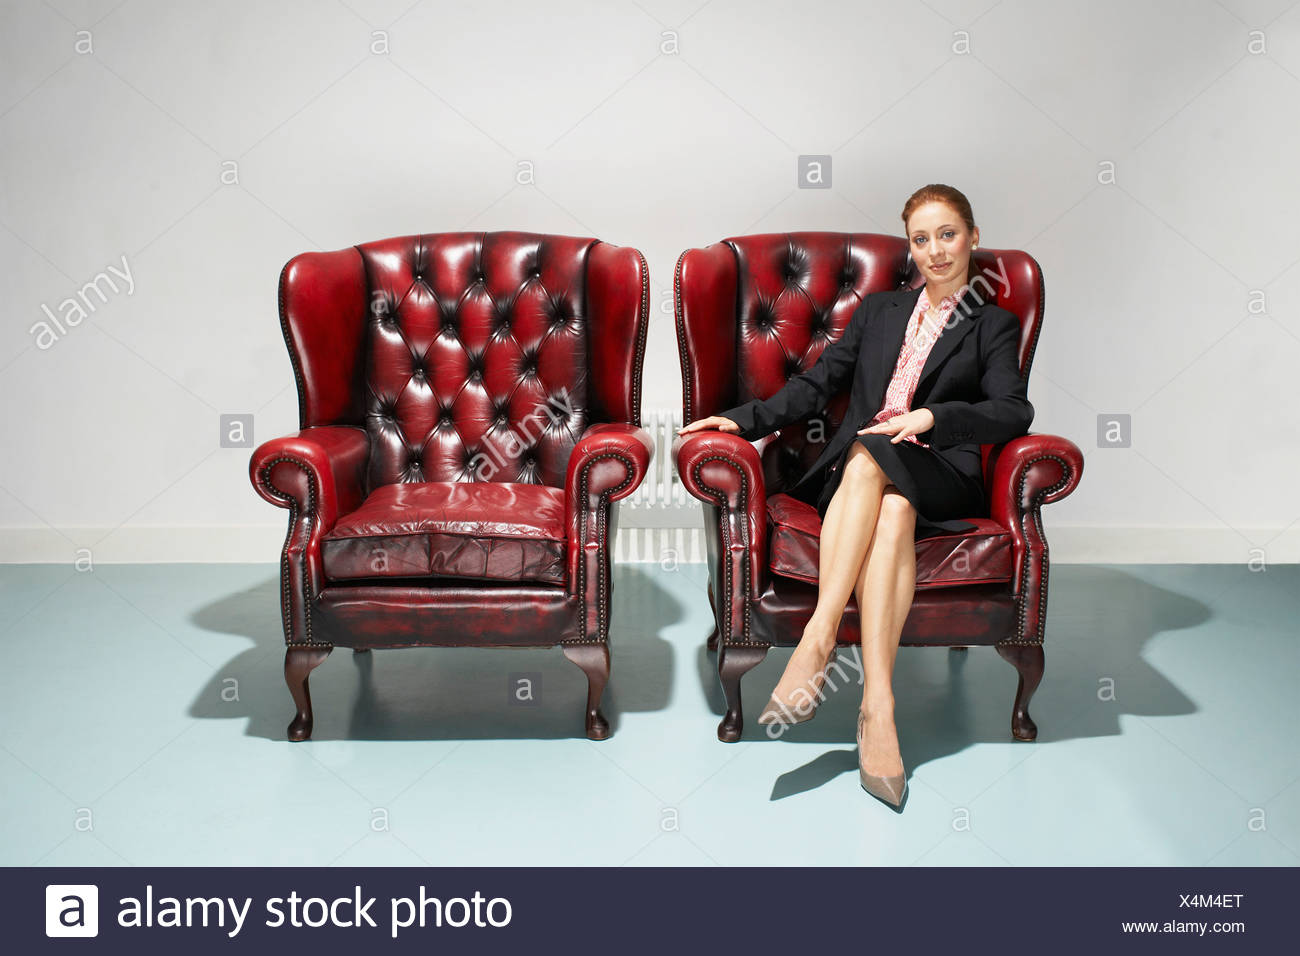 Businesswoman in a comfy leather chair - Stock Image